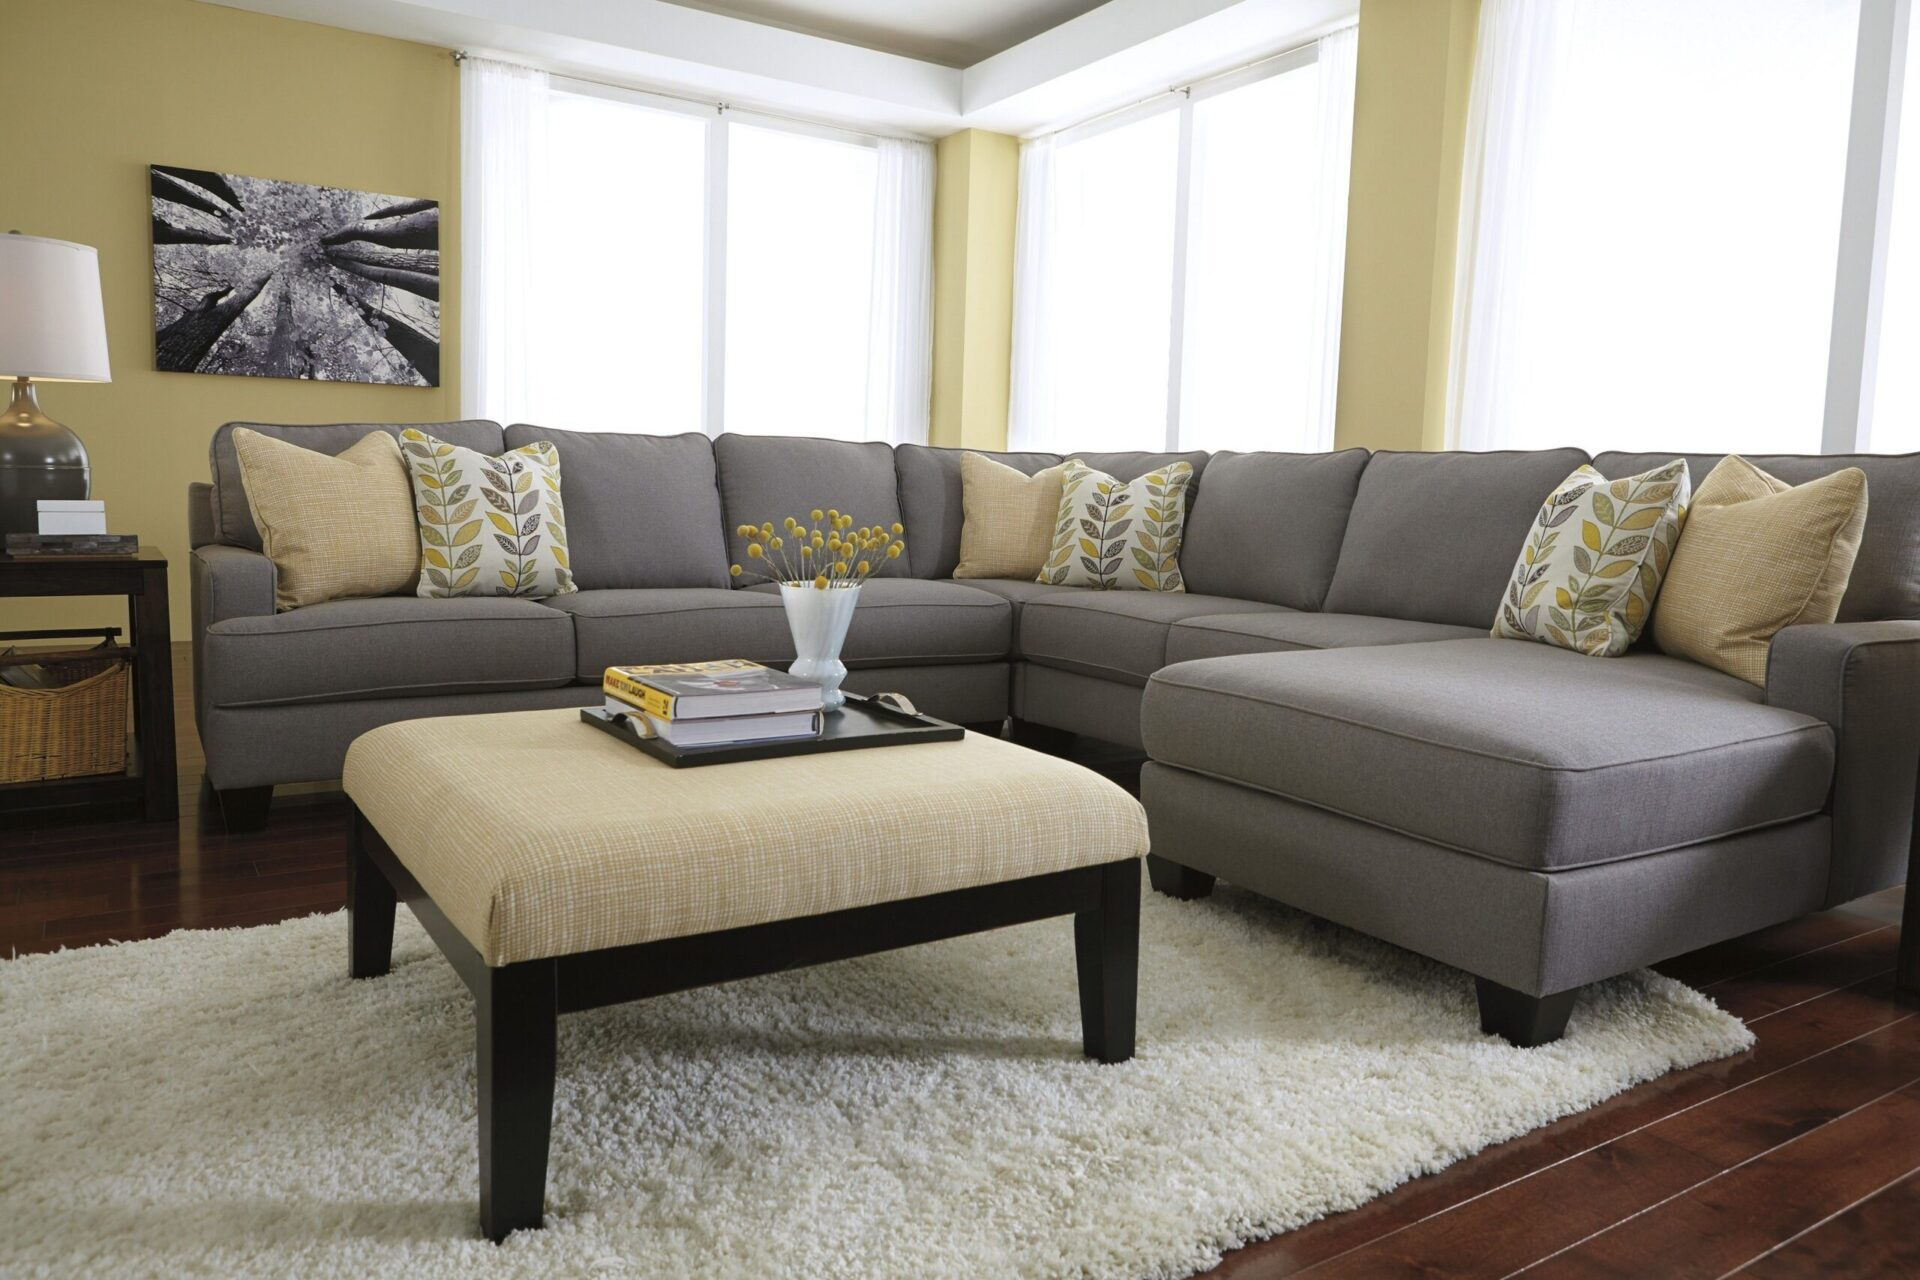 Sectional Sleeper Sofa for Beautiful Look in the Room